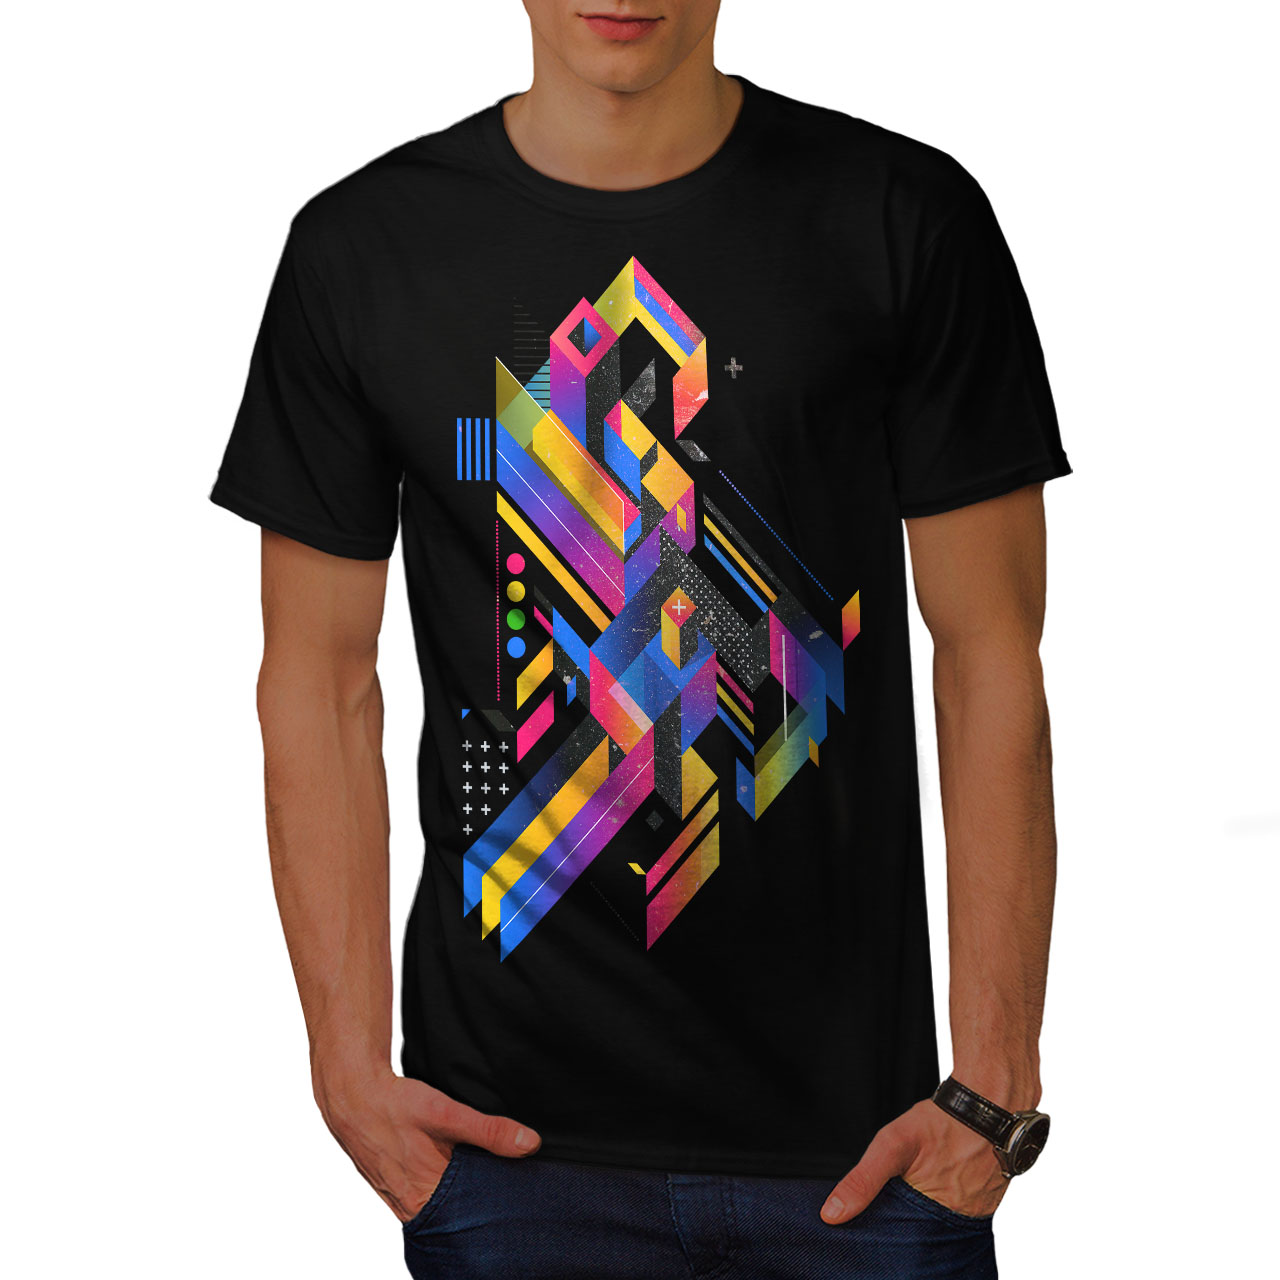 Wellcoda-Abstract-Maze-T-shirt-homme-Labyrinthe-conception-graphique-imprime-Tee miniature 3